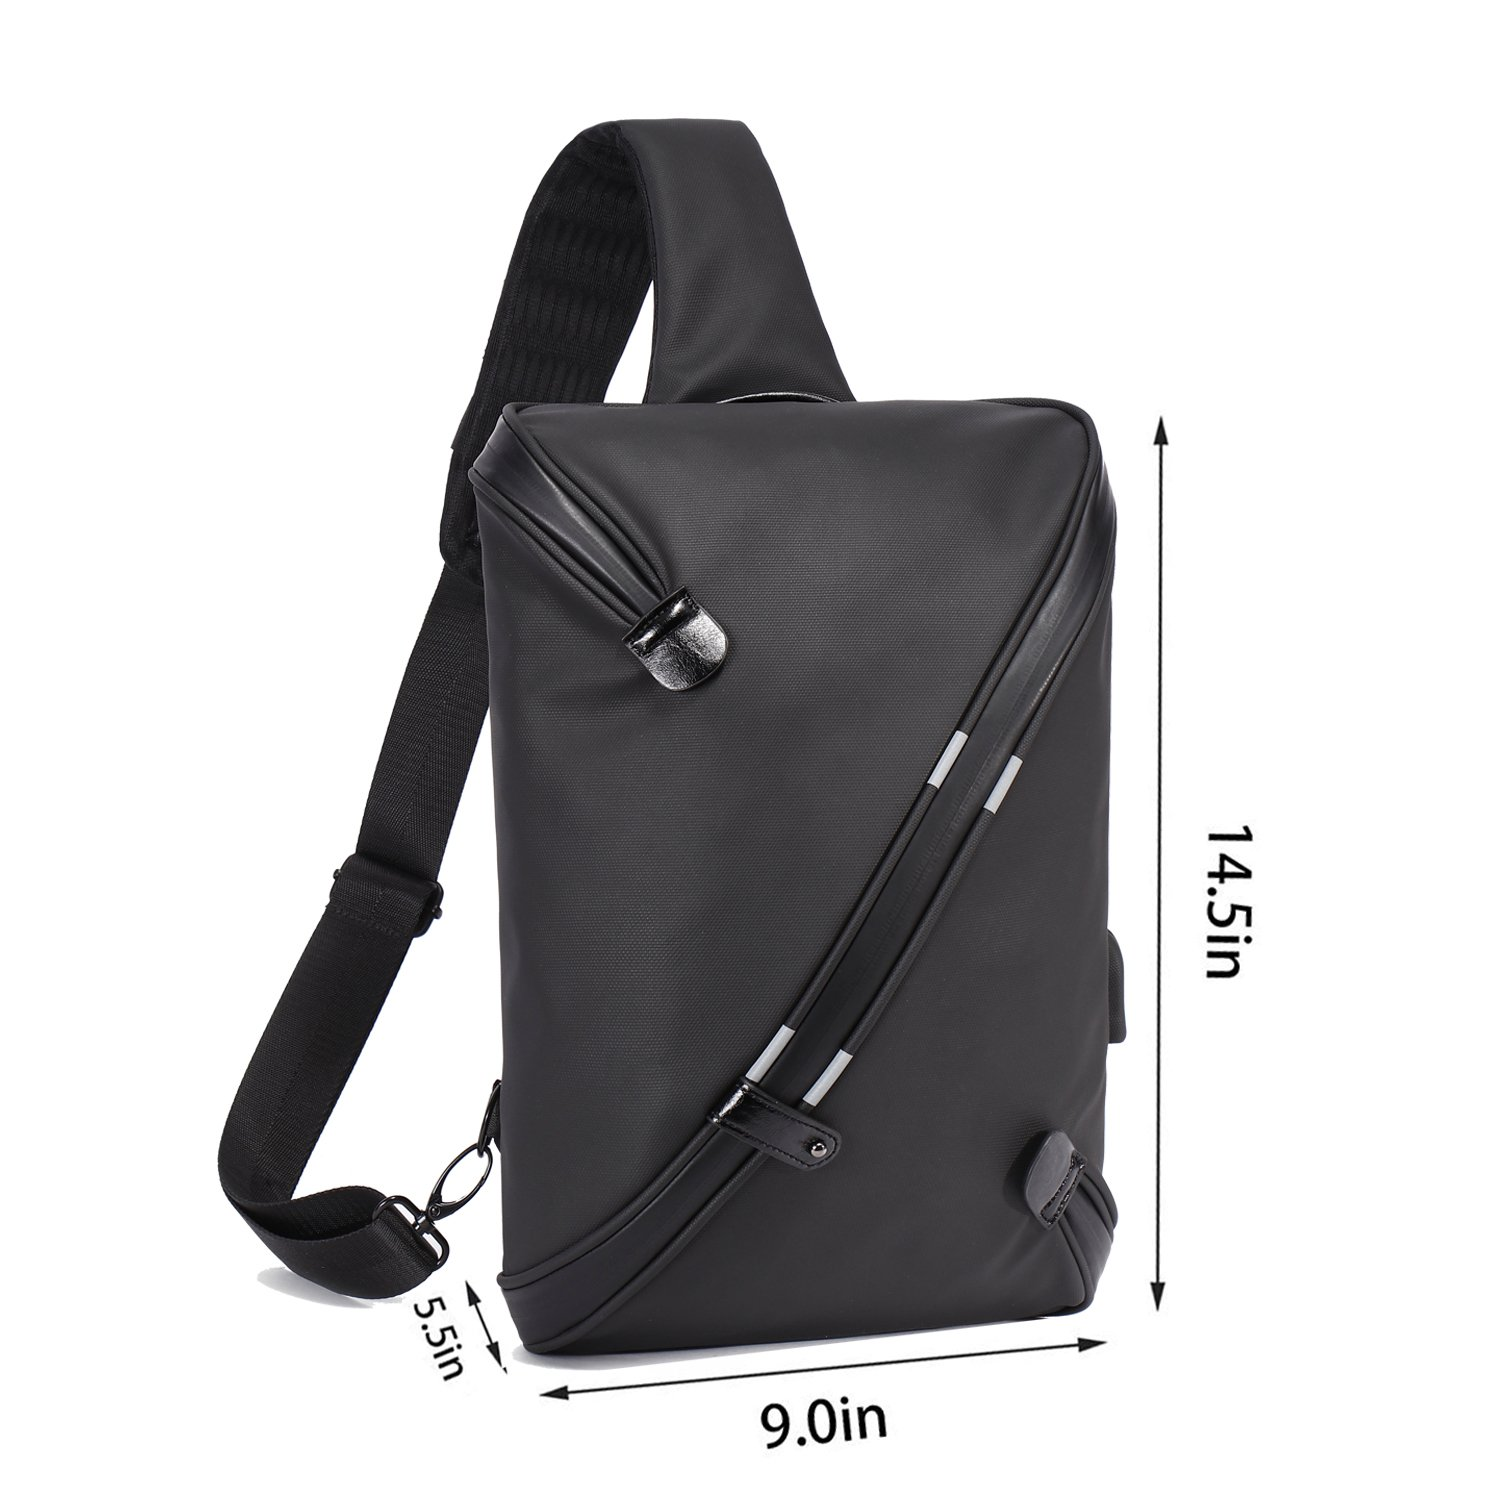 BeckySling Chest Shoulder Backpack,Travel Fashion Crossbody Bag Multipurpose Casual Daypacks for Men&Women,Hiking Triangle Rucksack with USB Charging Port-Black by BECKY (Image #2)